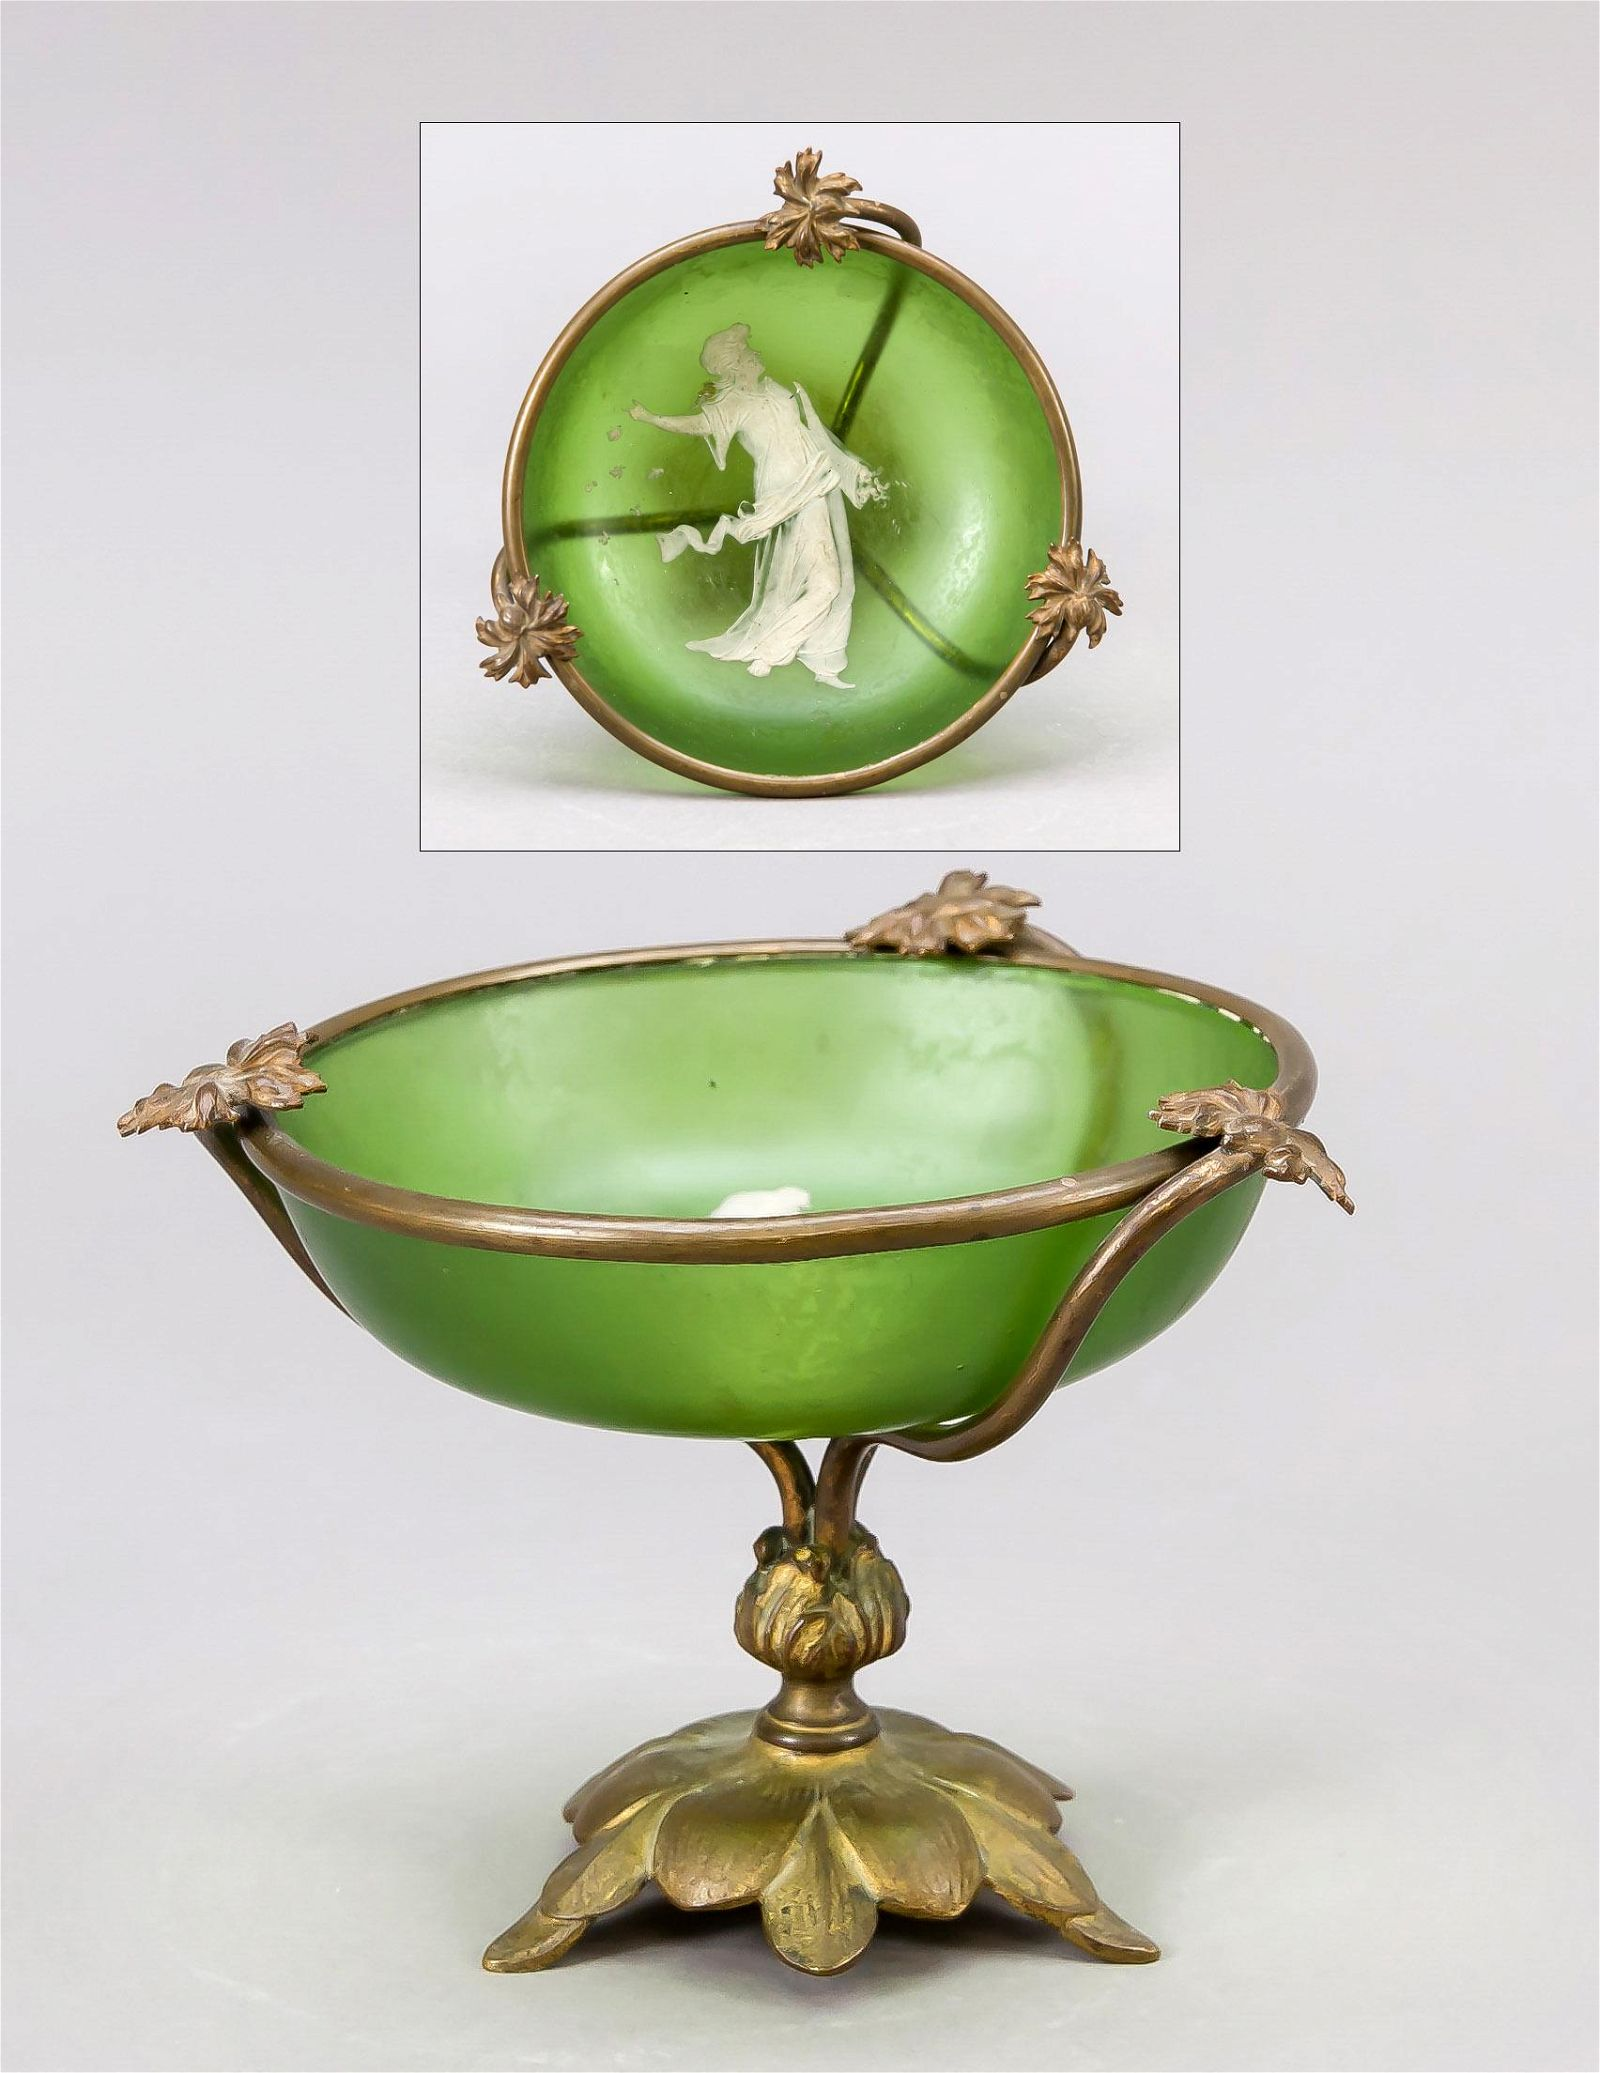 Small top bowl, c. 1900, brass